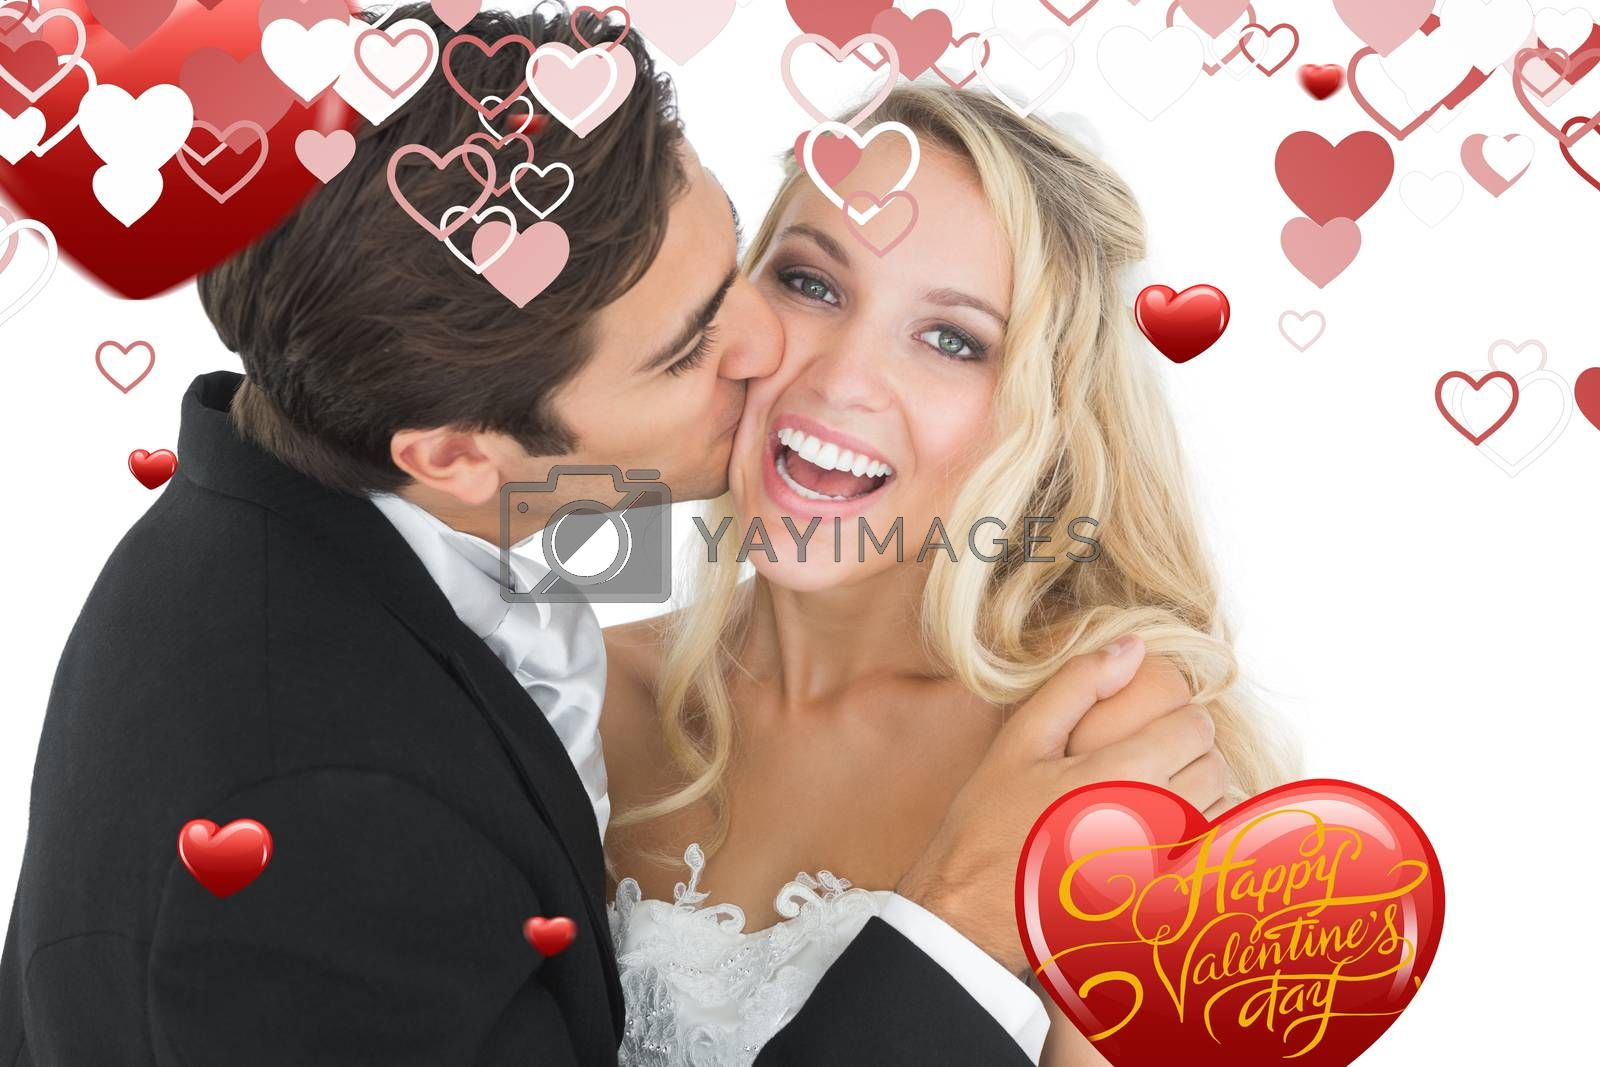 Handsome bridegroom kissing his wife on her cheek against happy valentines day